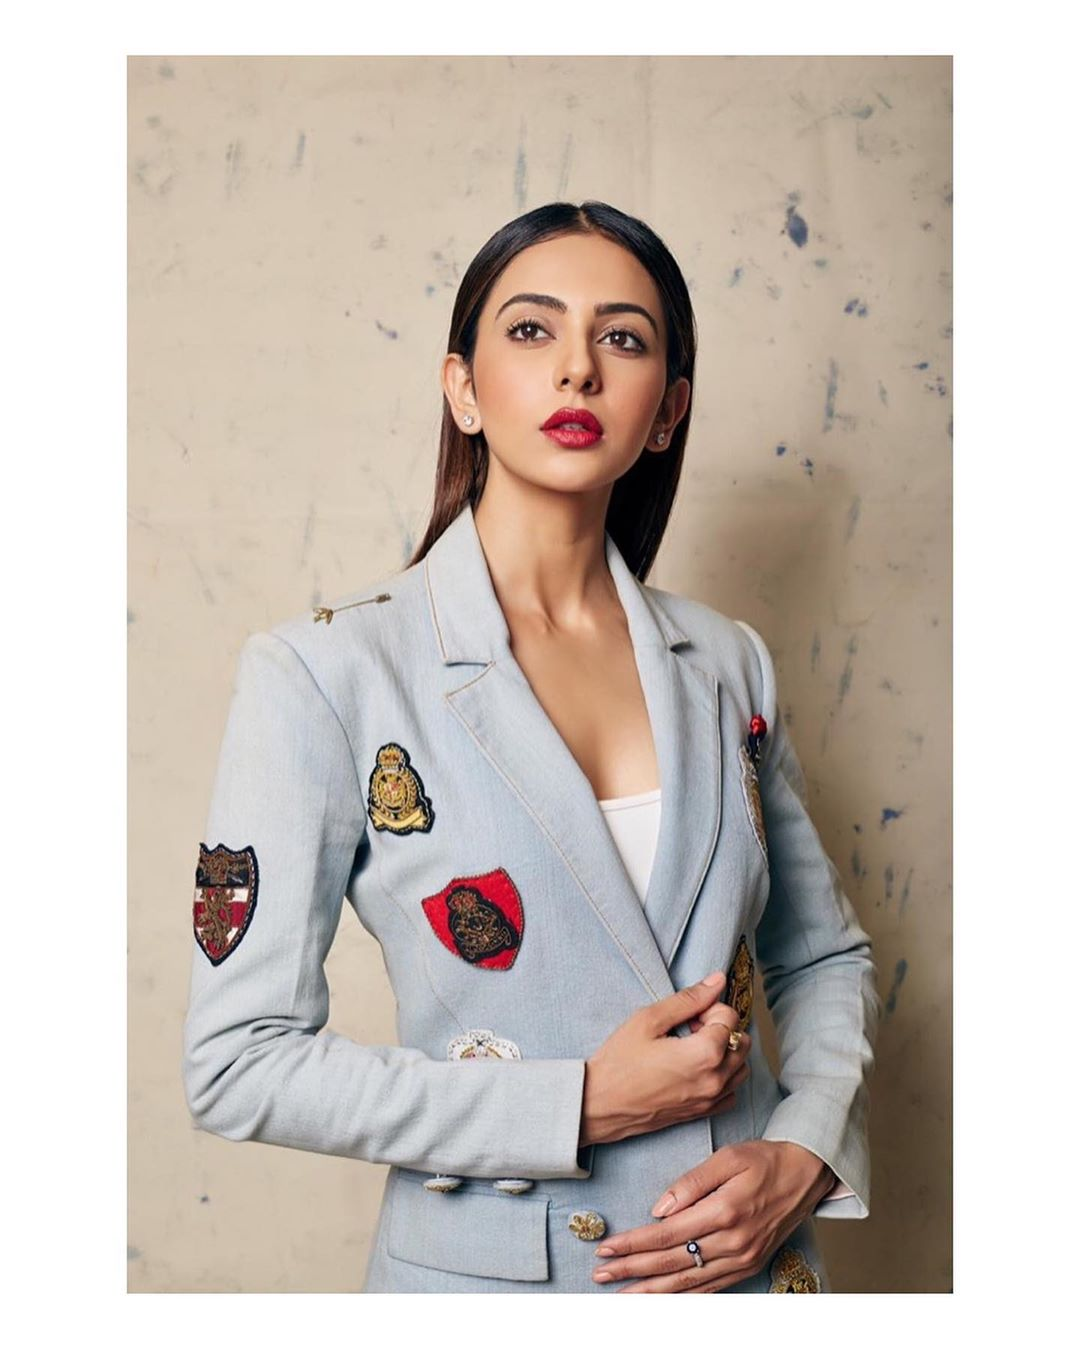 Rakul Preet In A Funky Coat While Posting For A Photo Shoot